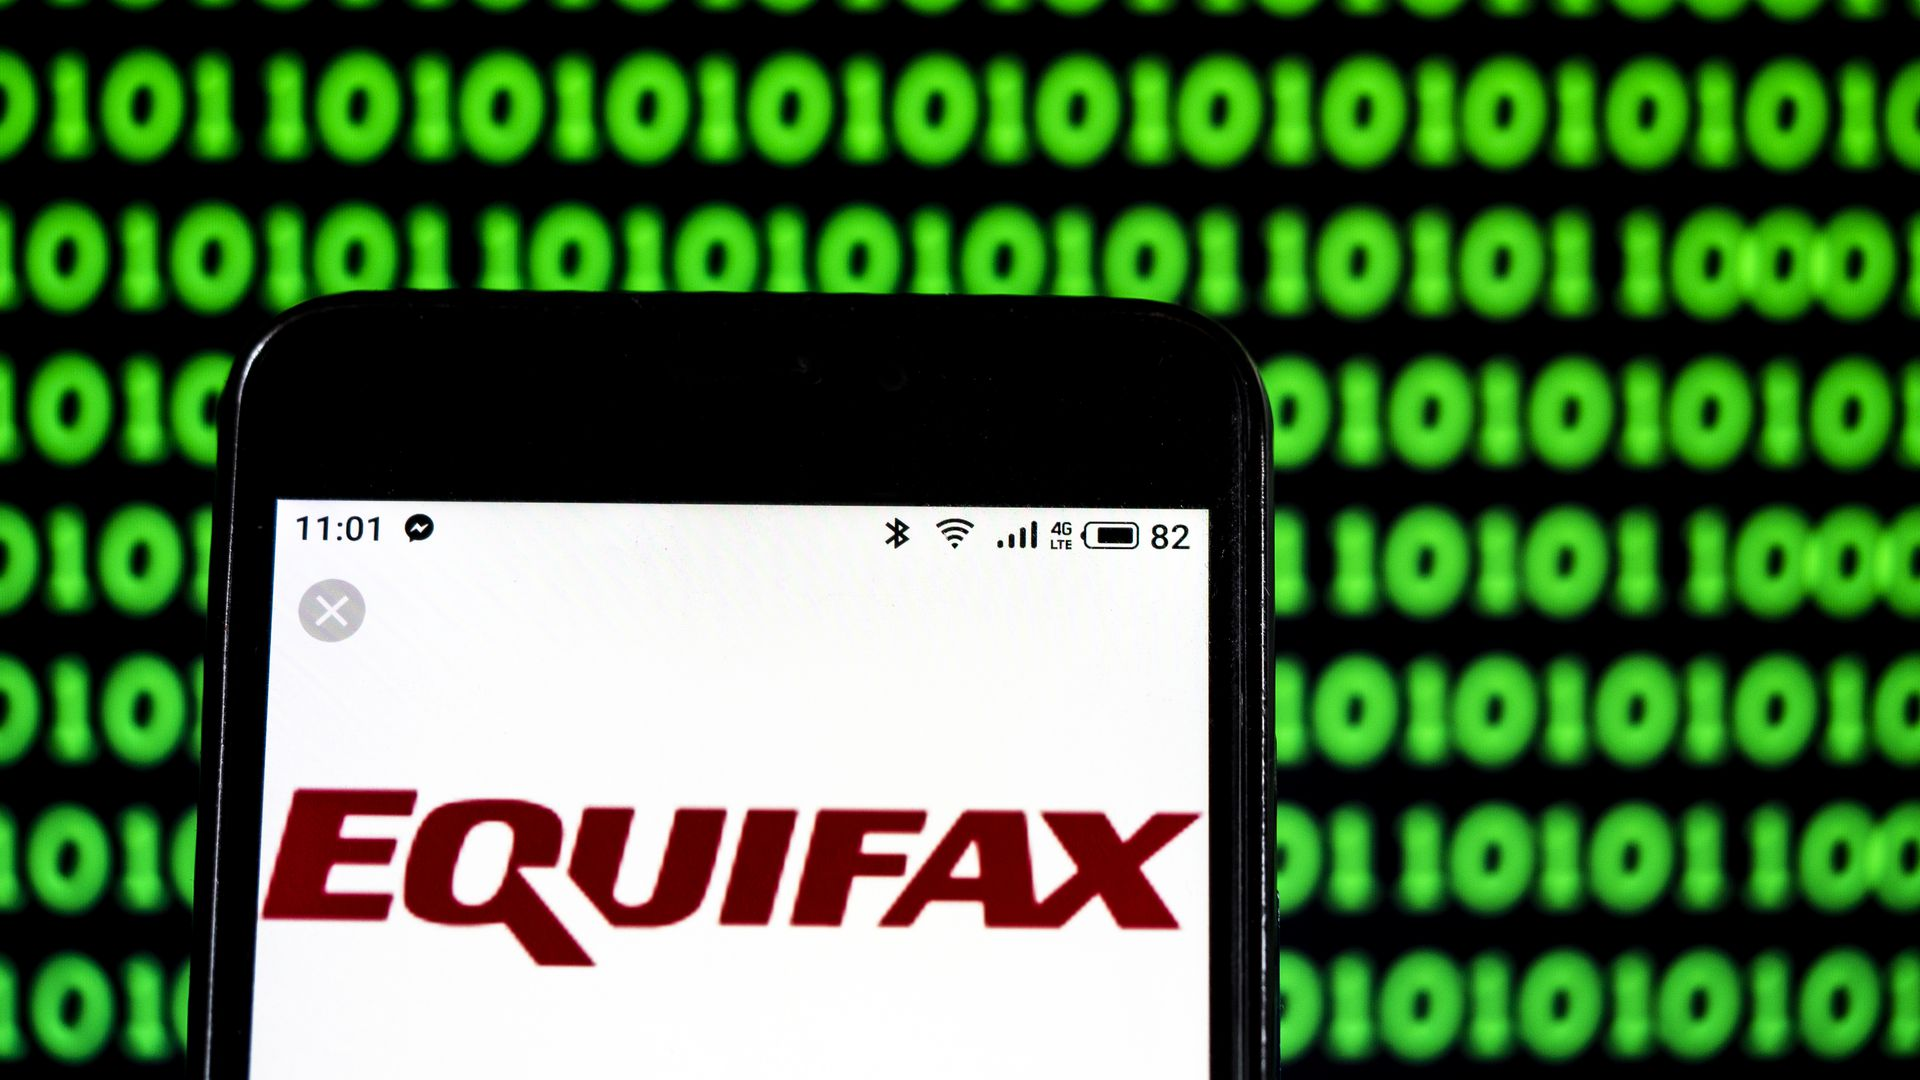 In this image, an iPhone is held close to the viewer against a green and black background of 1s and 0s. The phone screen is a white background with the logo 'Equifax' displayed in red.